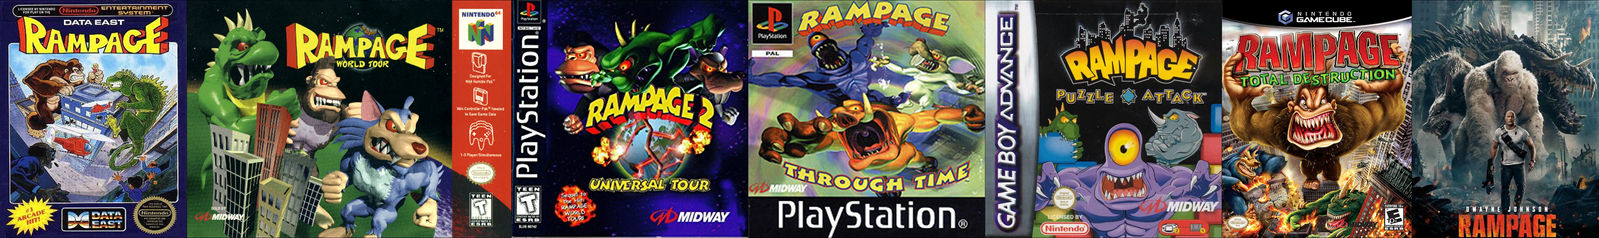 All Rampage Games Movie Ranked By Mk1monsterock1989 On Deviantart